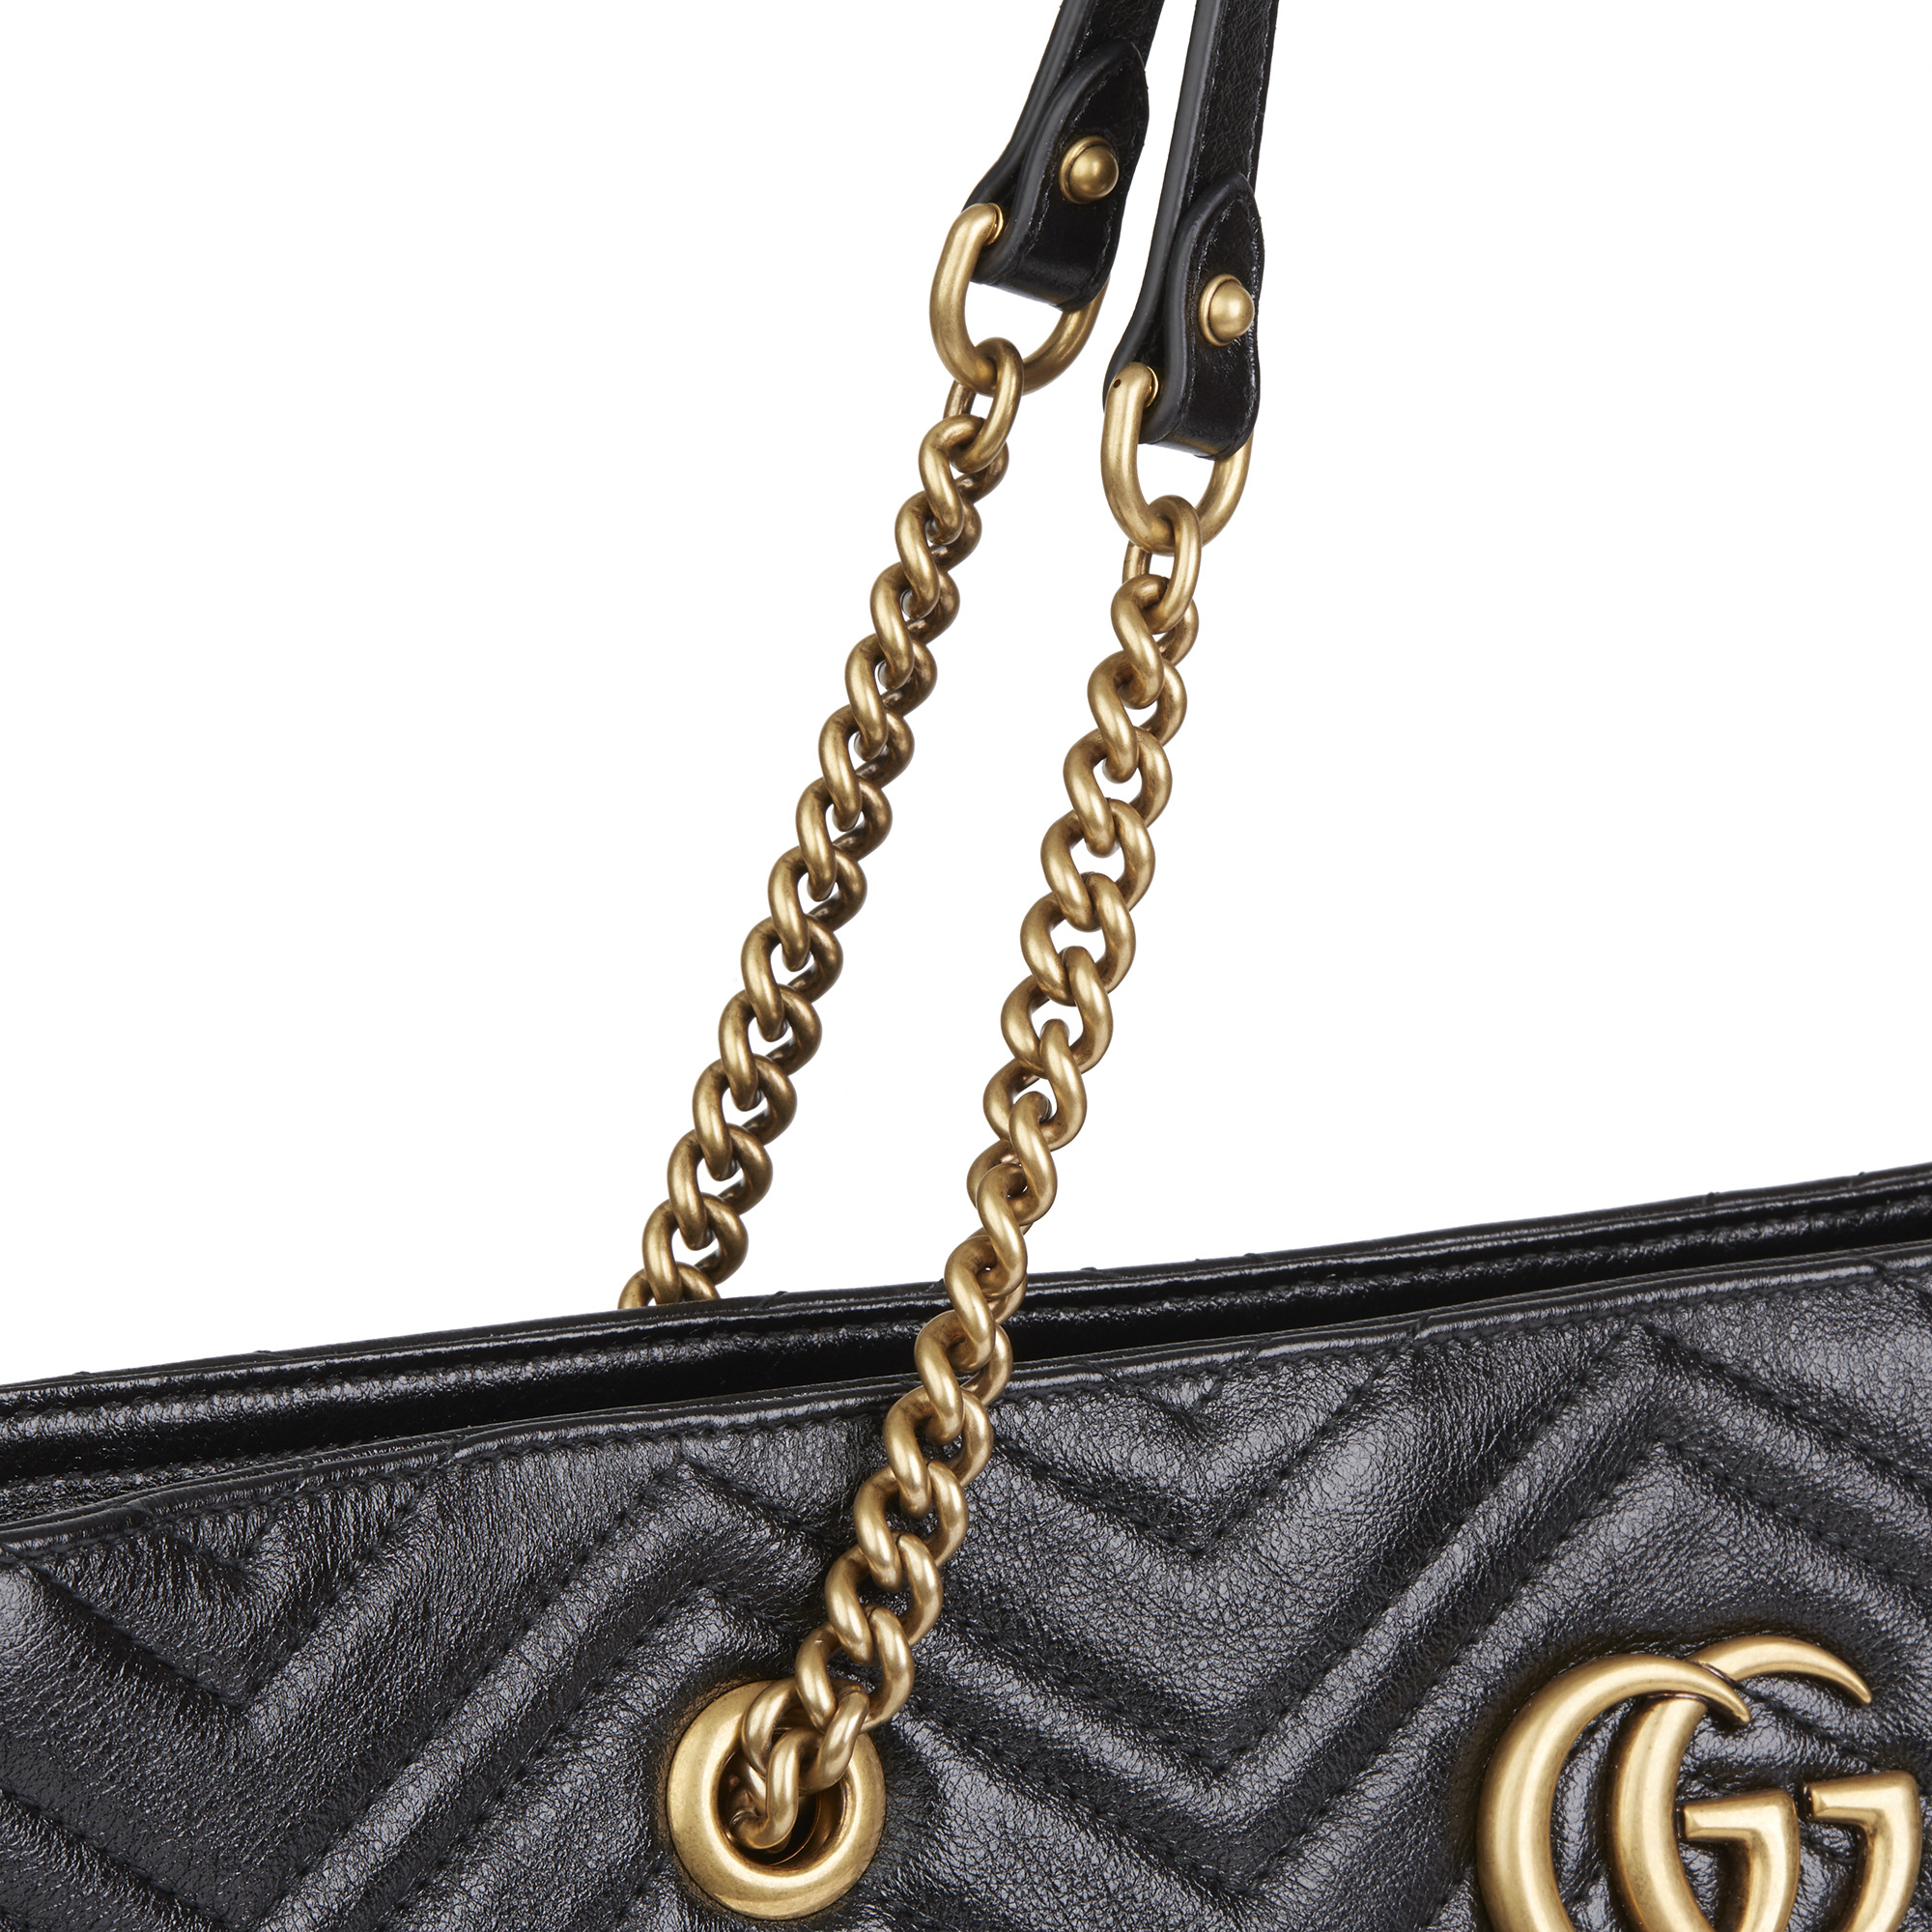 Gucci Black Quilted Shiny Calfskin Leather Marmont Shoulder Tote - Image 7 of 12